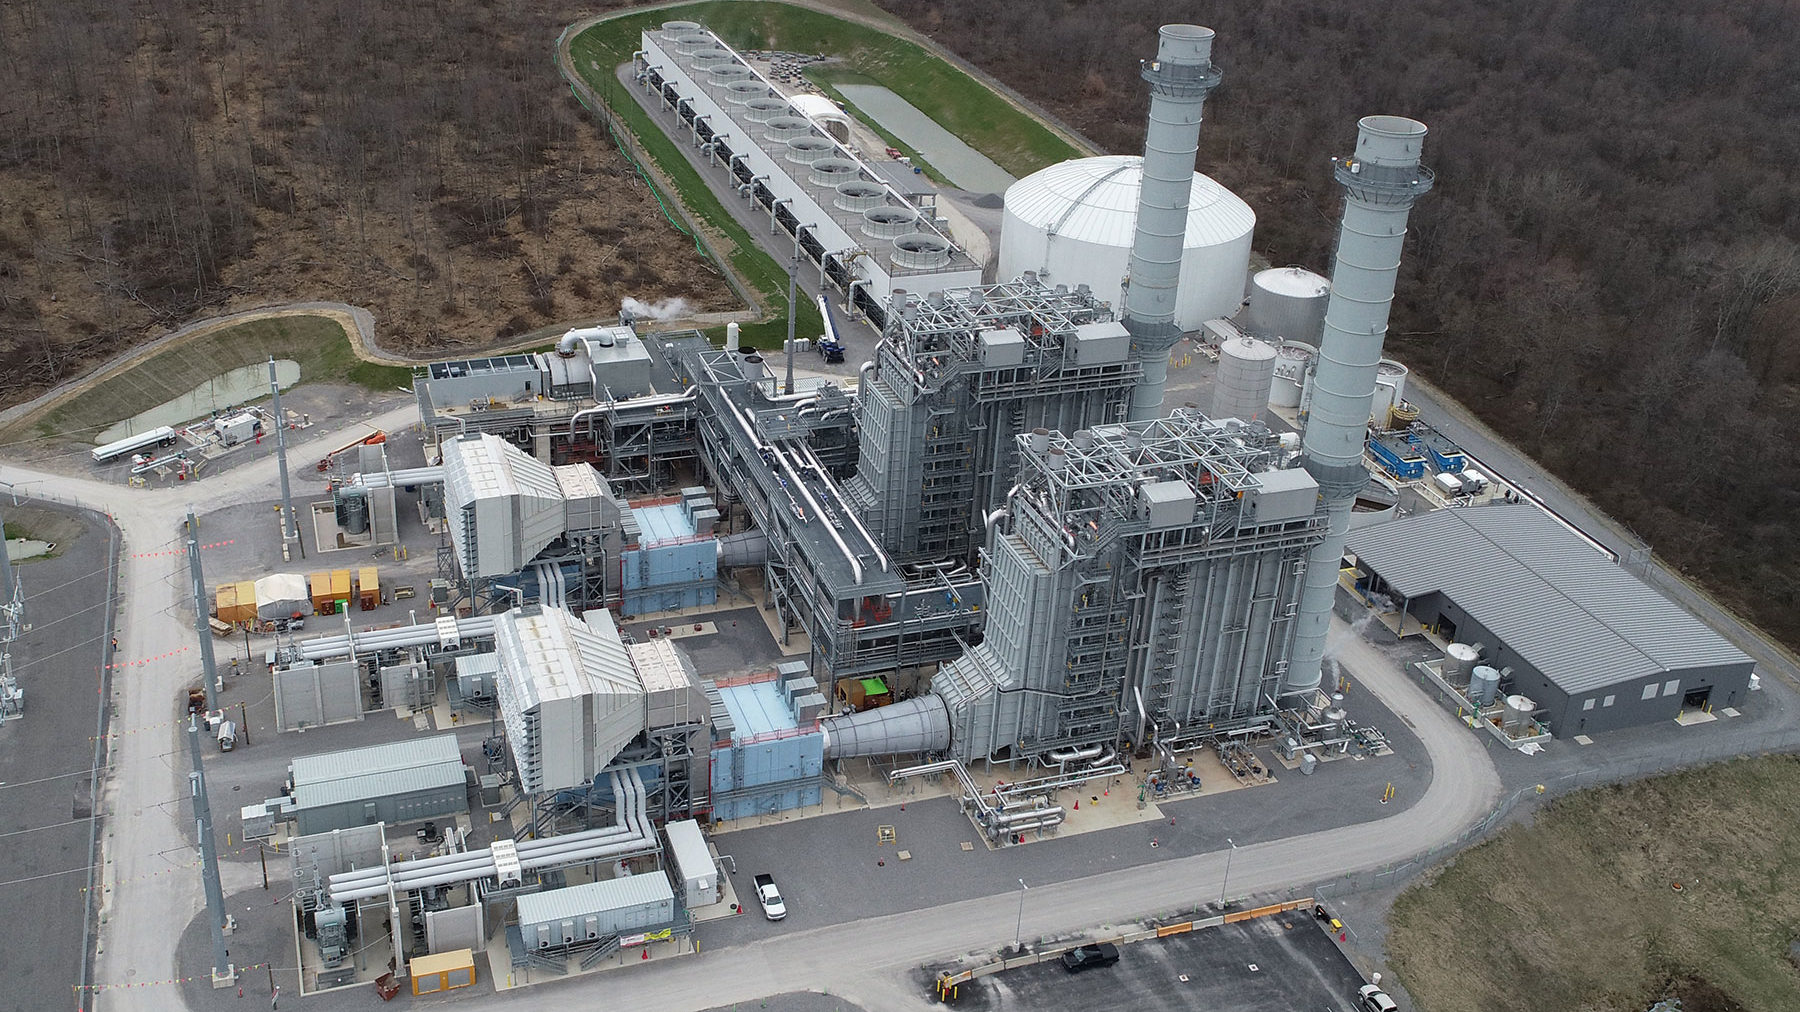 Hickory Run Energy Commences Commercial Operations May 18, 2020